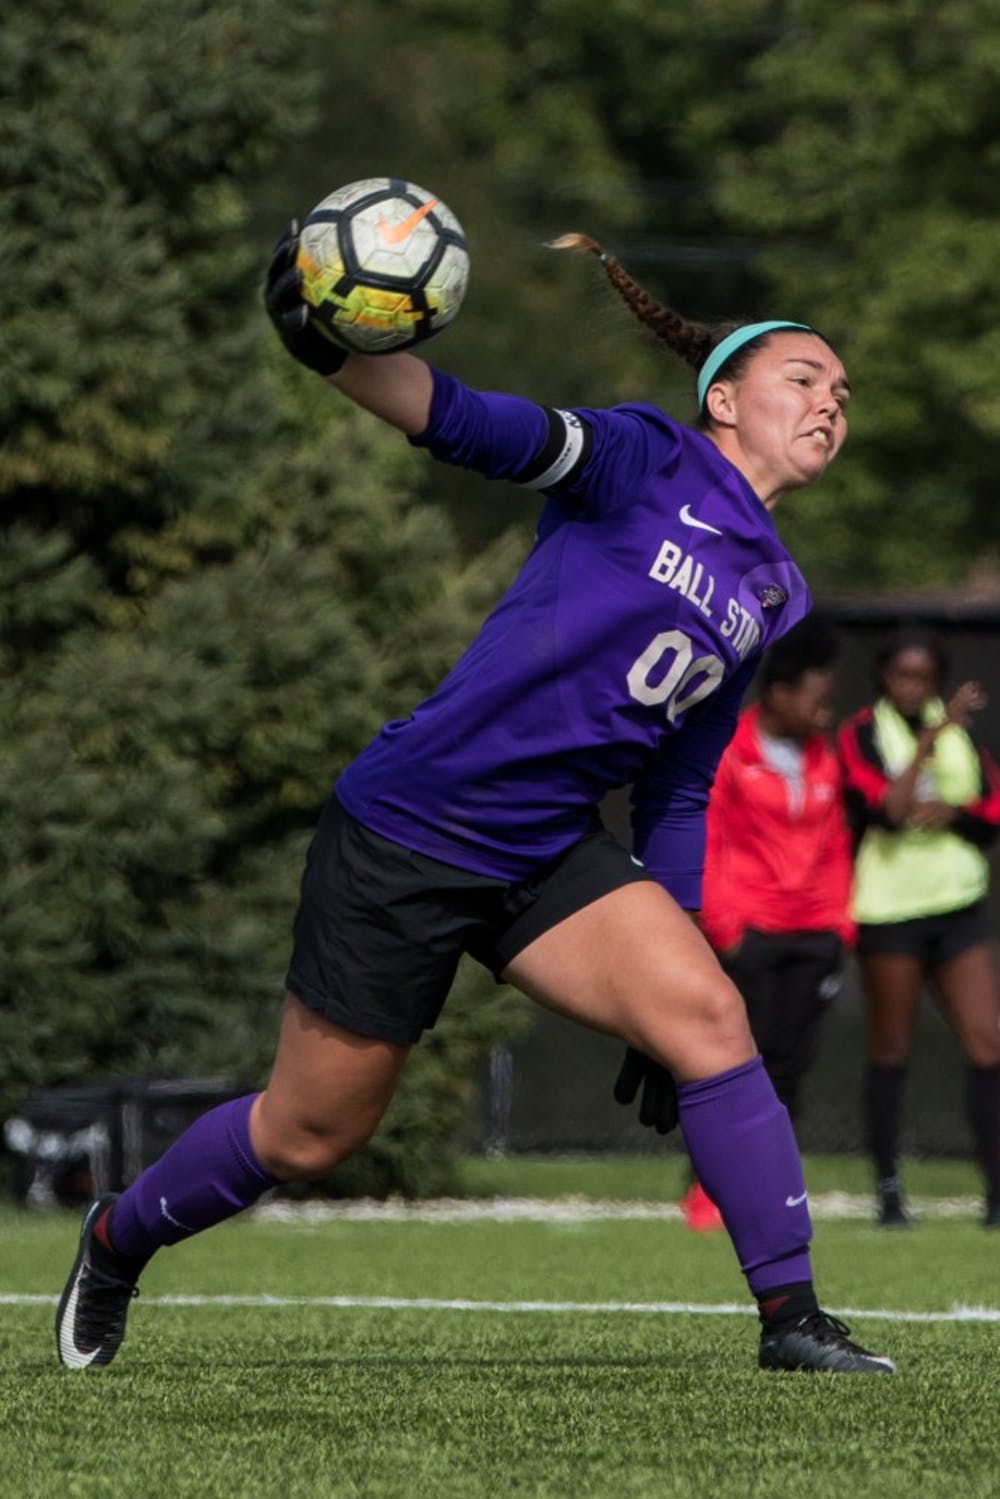 <p>Goalkeeper Tristin Stuteville throws the ball to a Ball State teammate after stopping an attempted goal by Buffalo in the first half of the game Oct. 14, 2018, at Briner Sports Complex. The Cardinals defeated the Bulls, 1-0. <strong>Eric Pritchett, DN</strong></p>